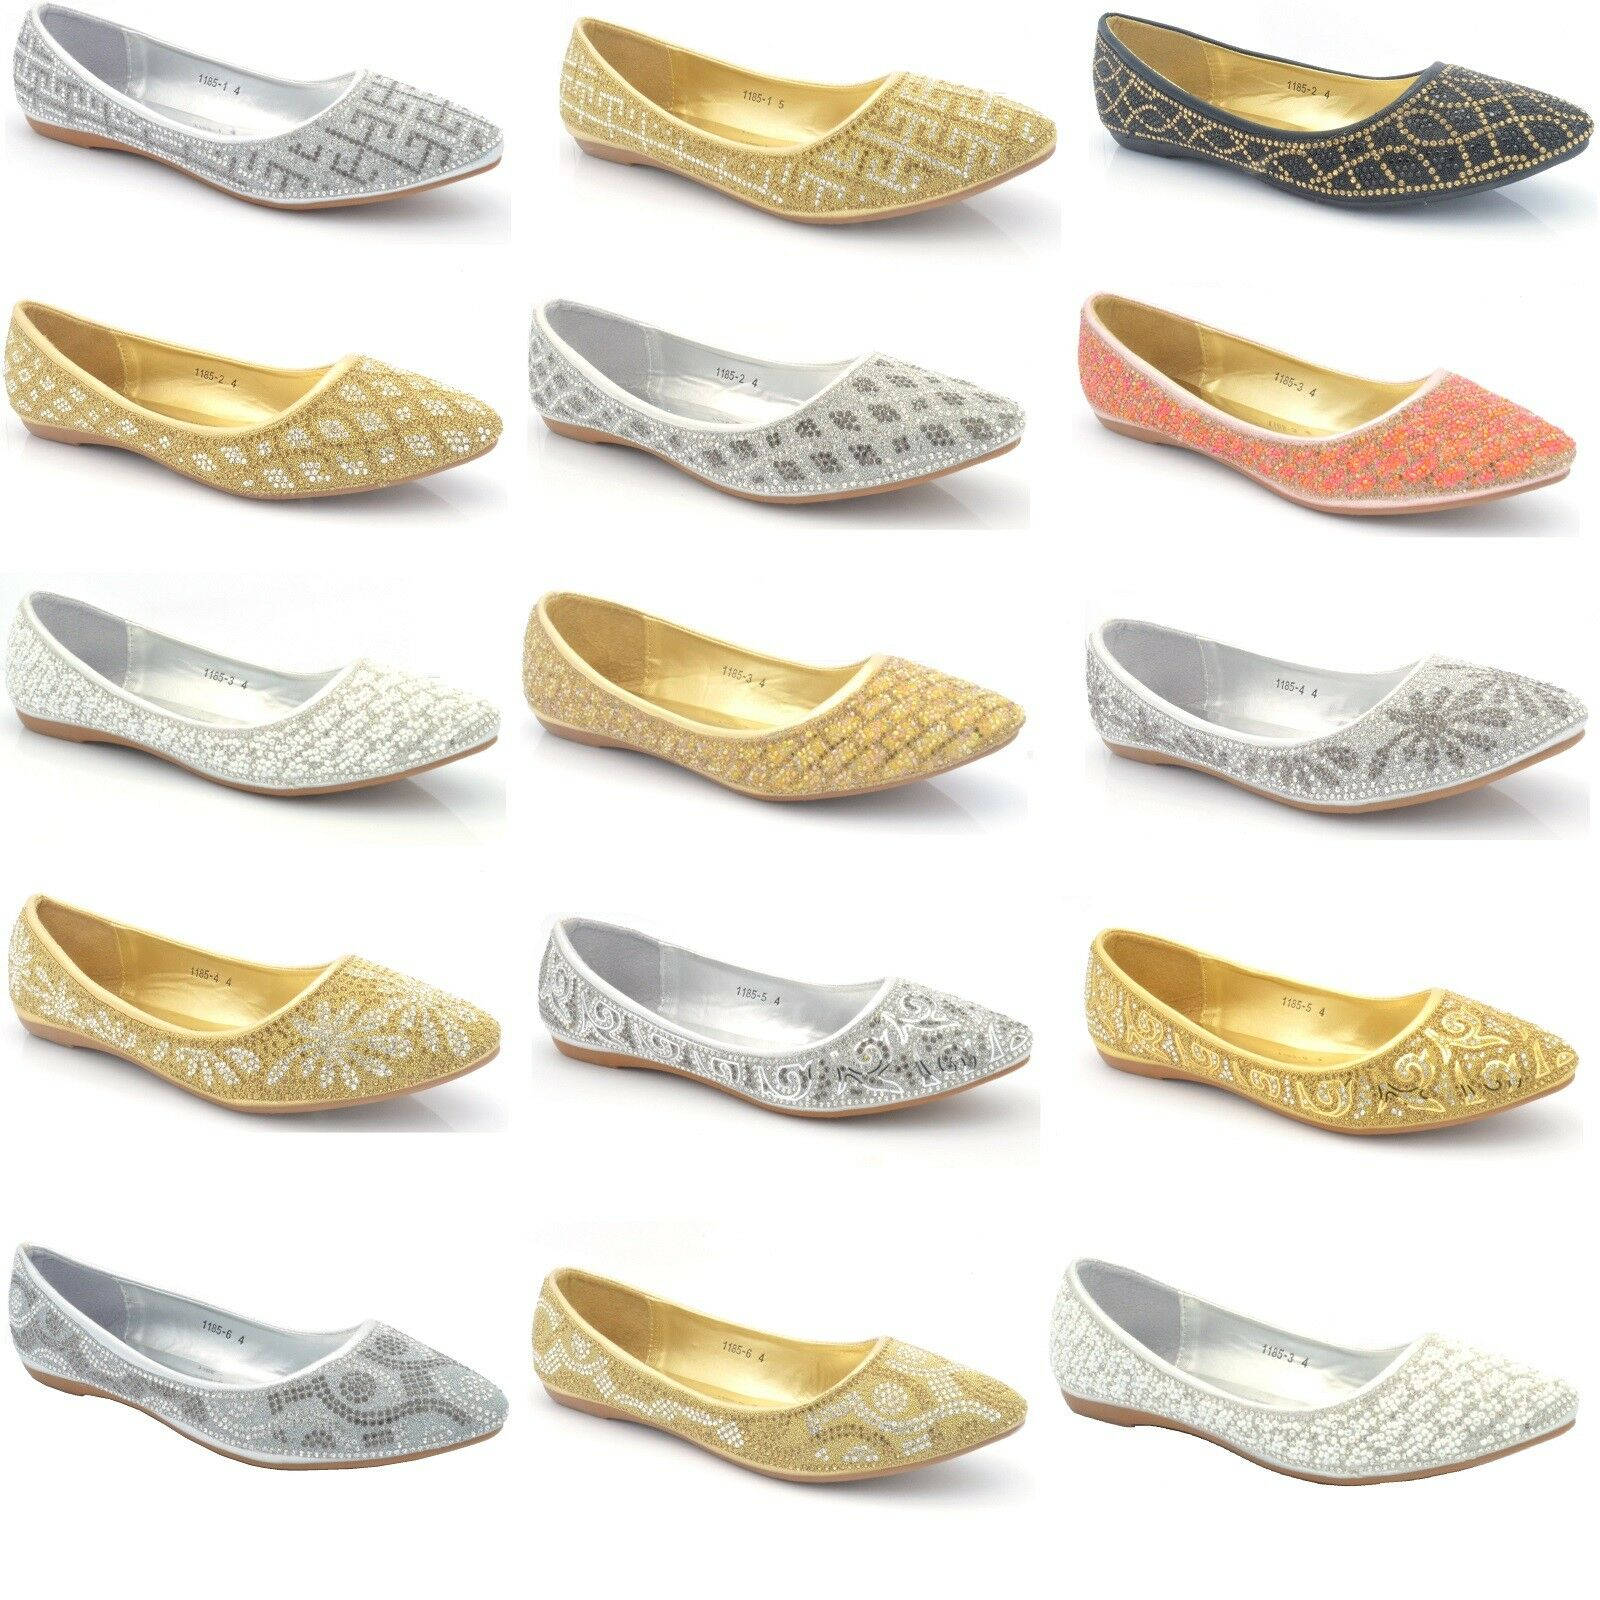 New Womens Diamante Ballet Flats Ladies Casual Party Ballerina Dolly Pumps Shoes